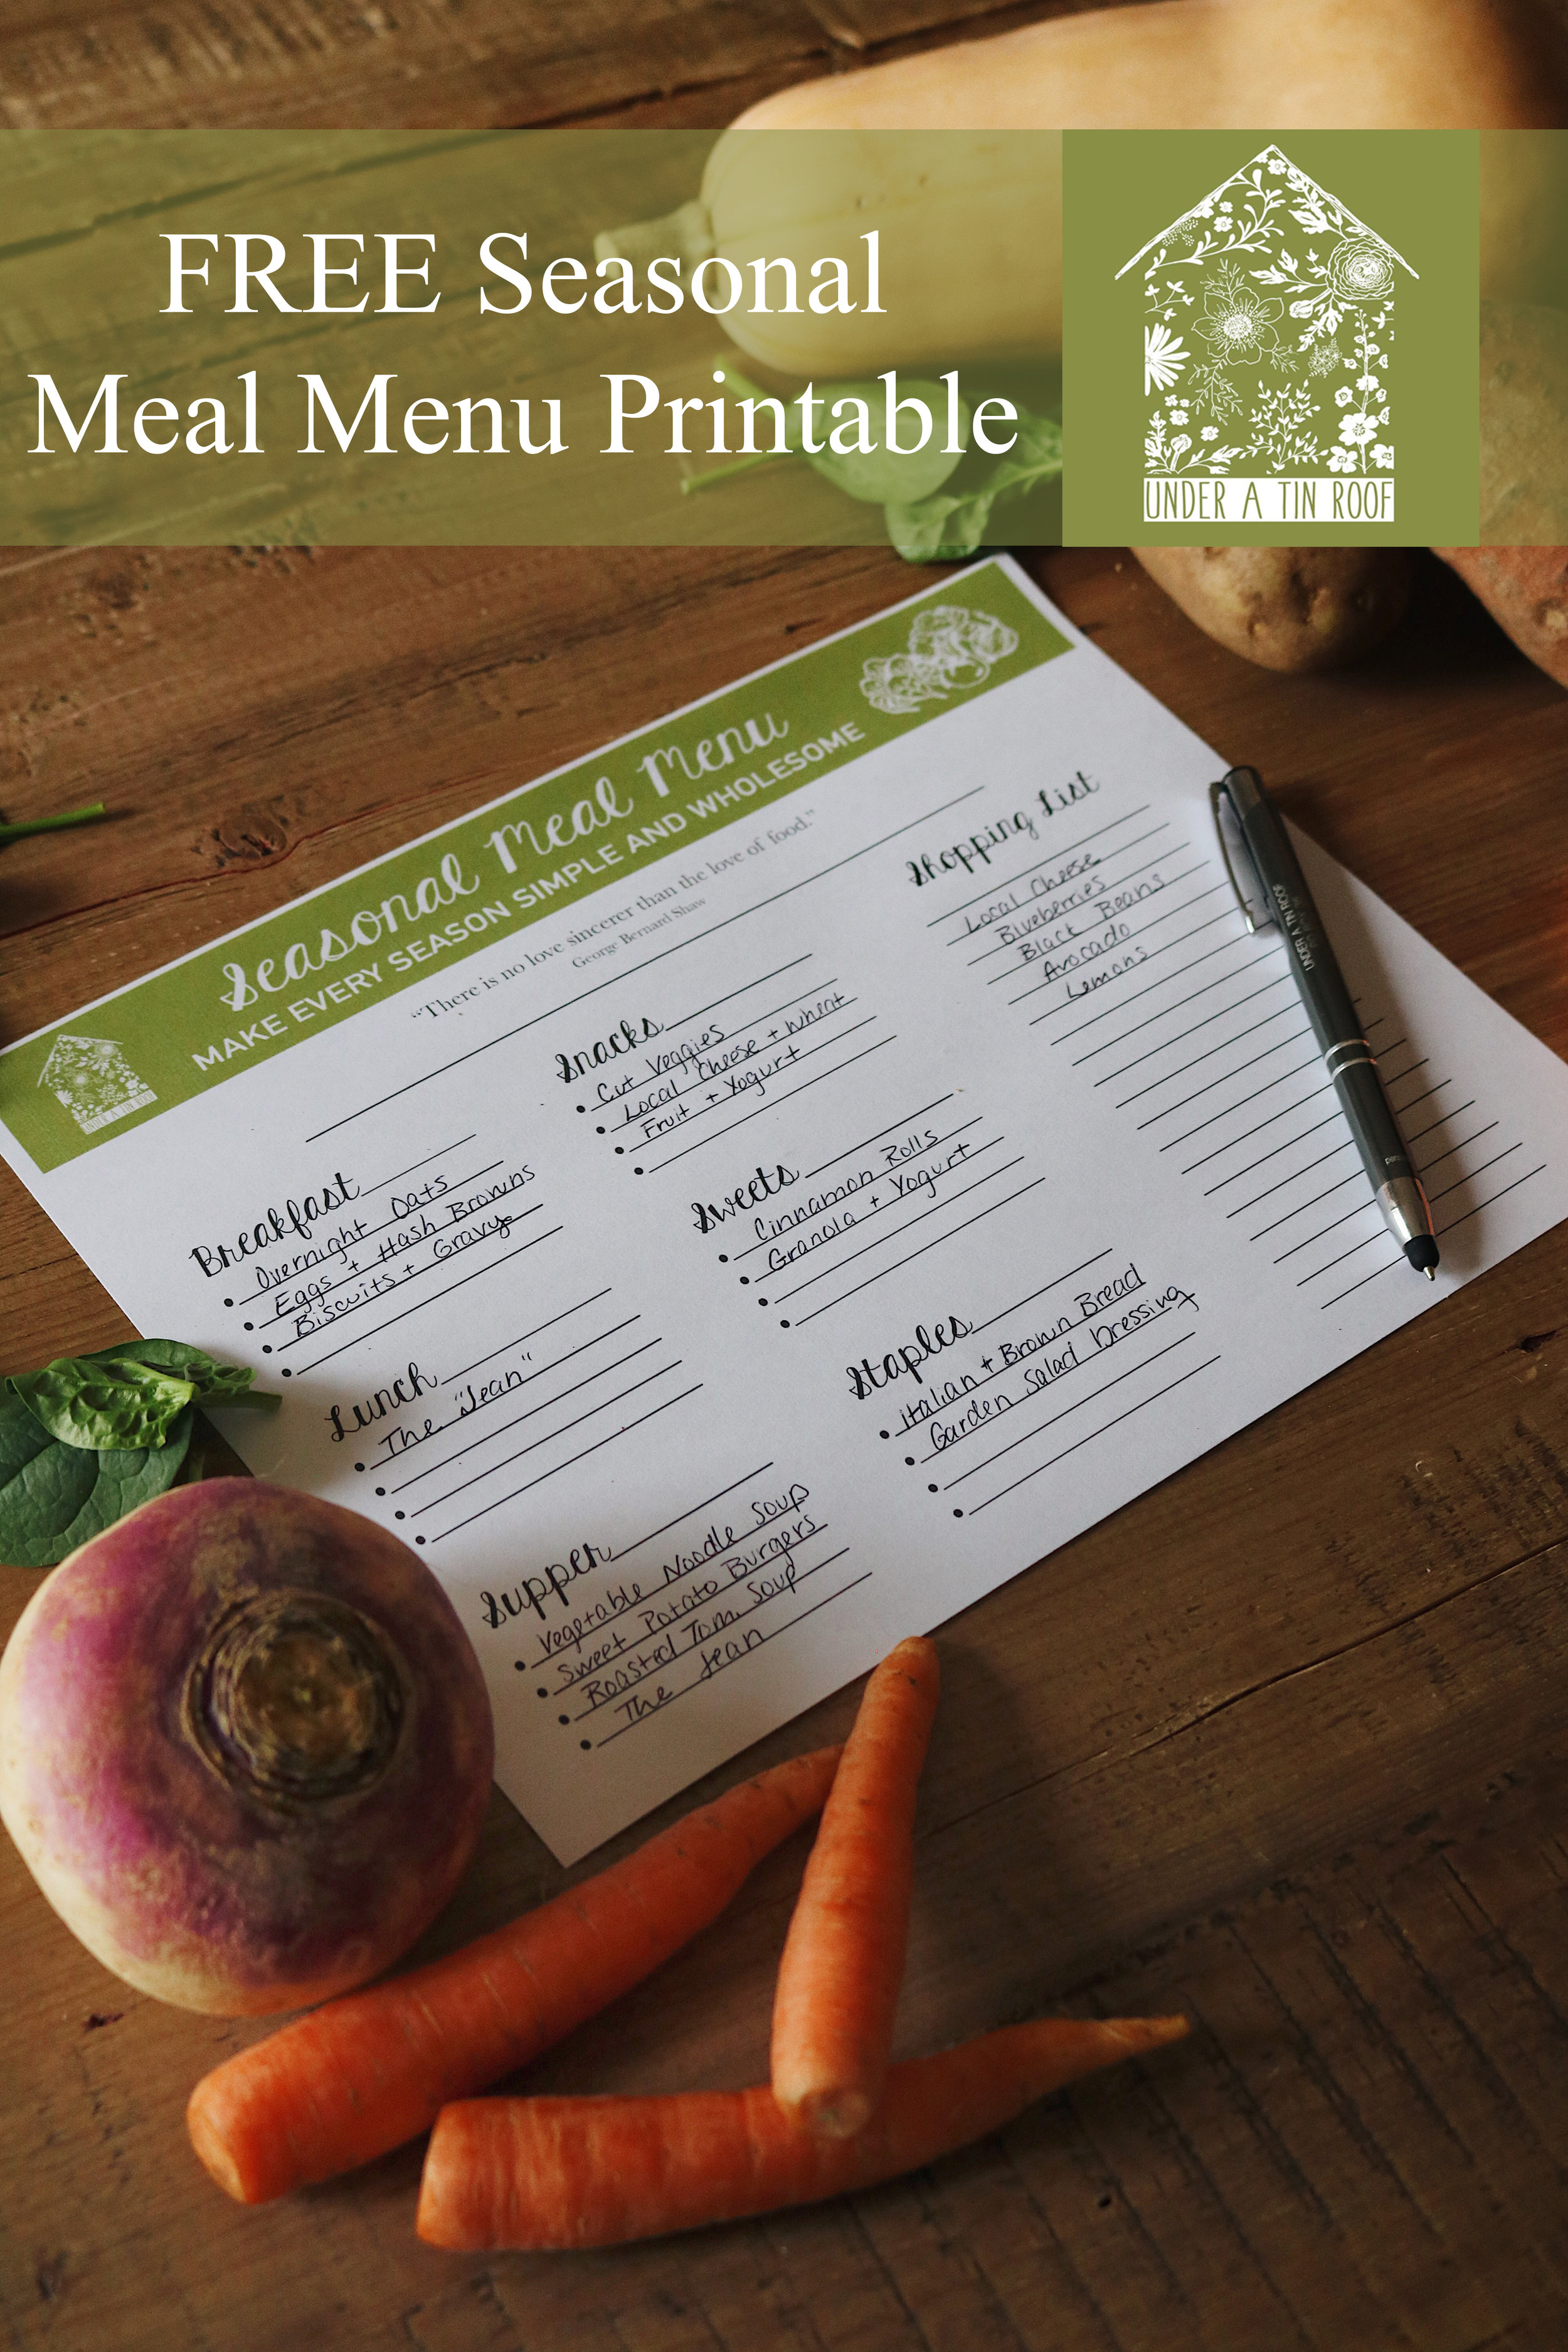 Meal Planning with a Monthly Seasonal Menu + Free Printable - Under A Tin Roof Blog